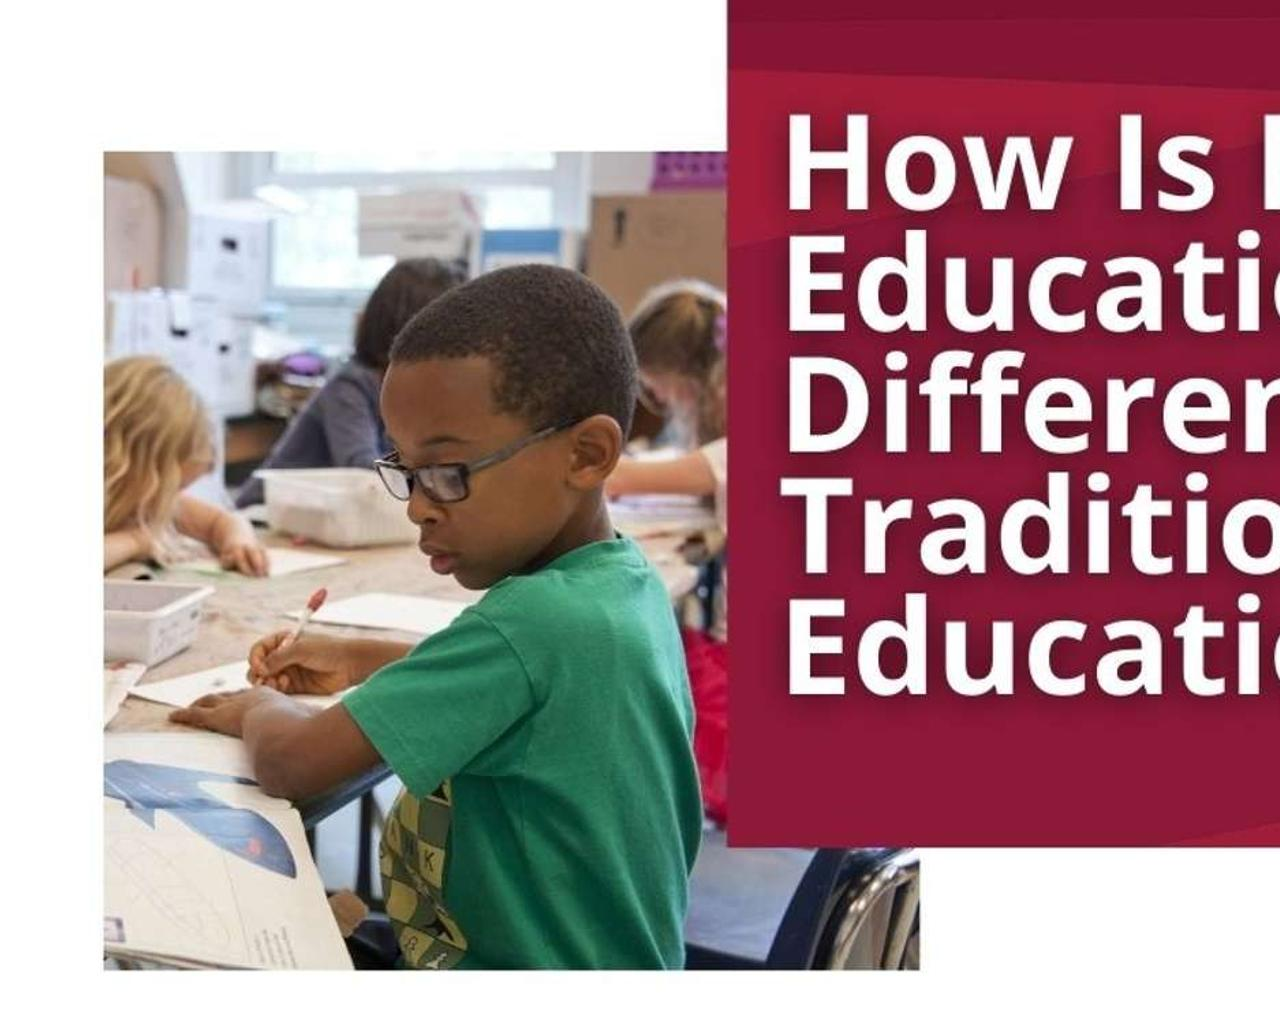 How Is Holistic Education Different from Traditional Education?